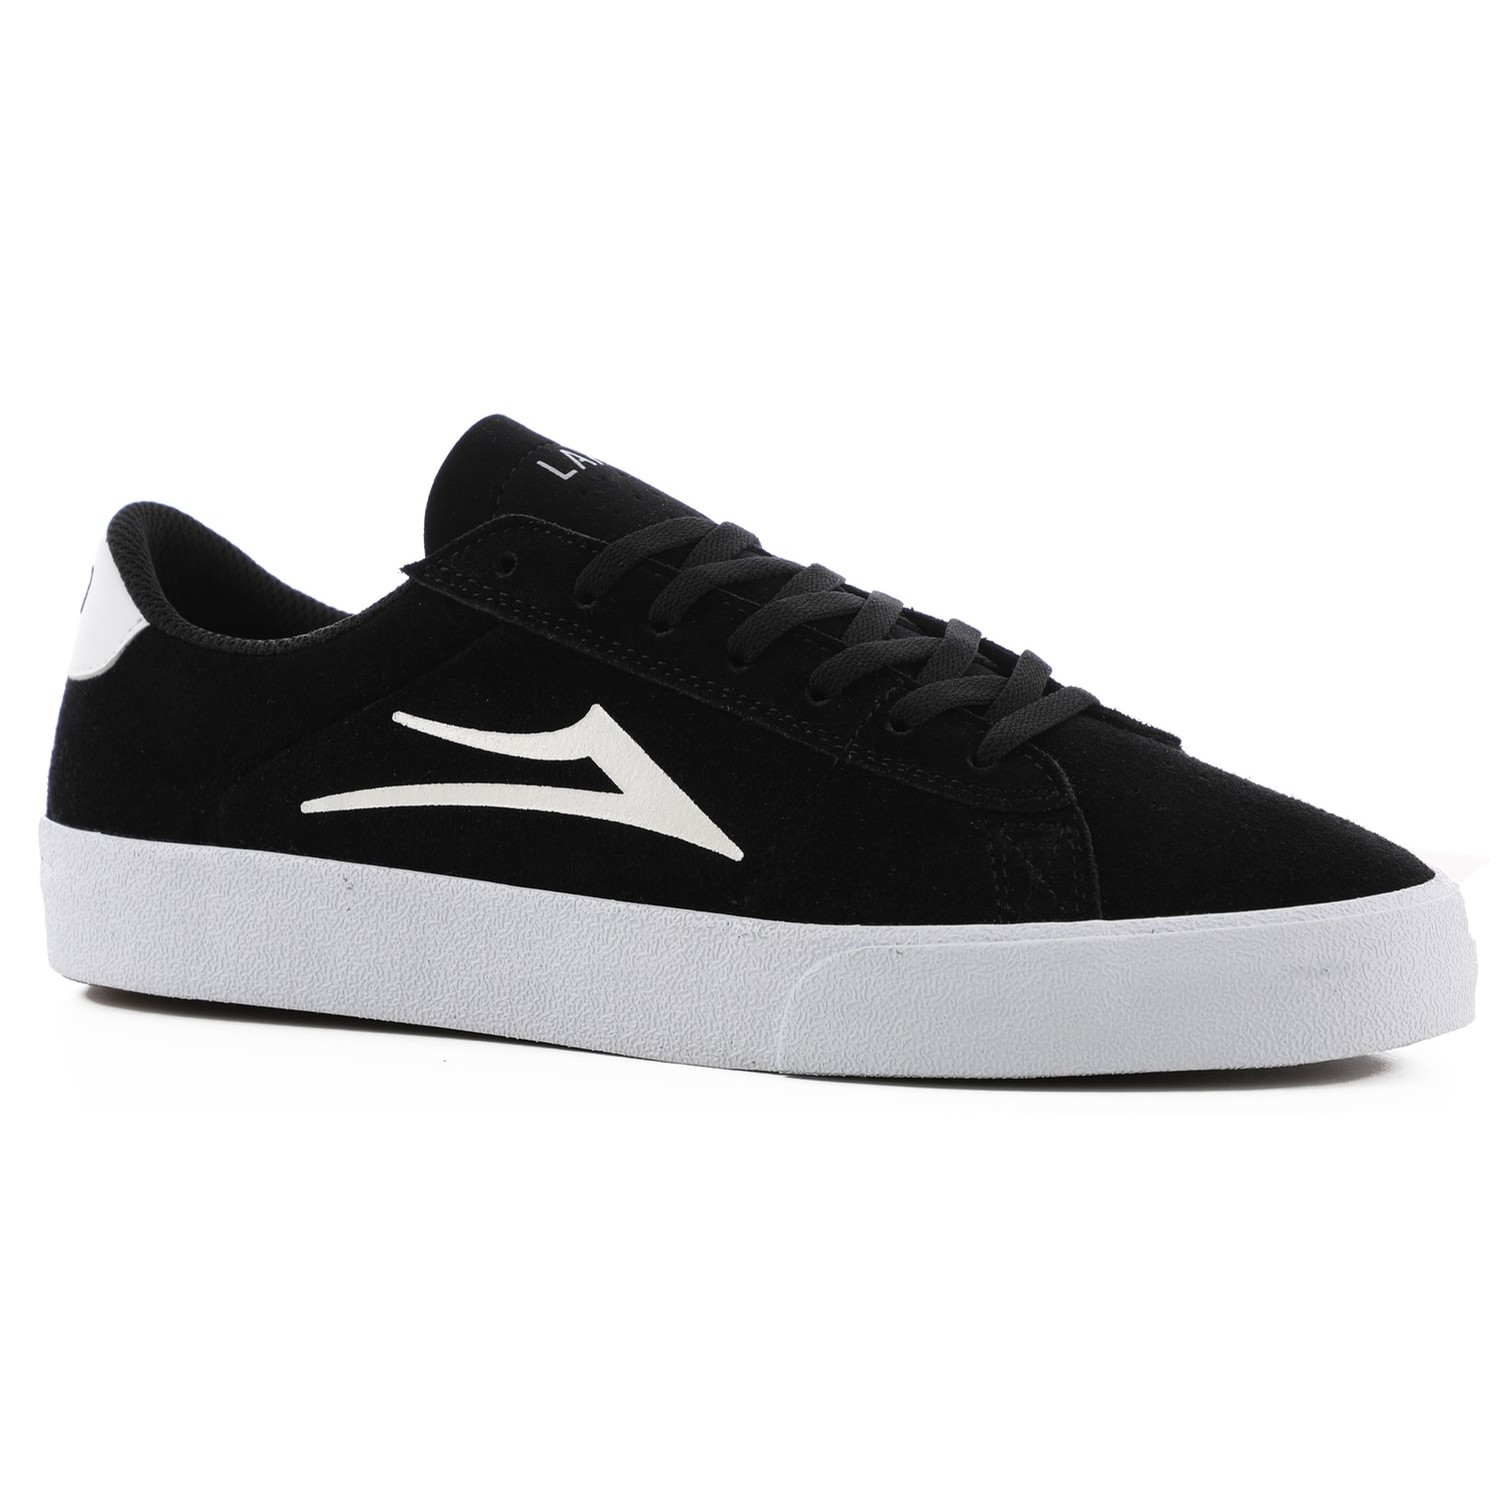 Newport (Black/White Suede)